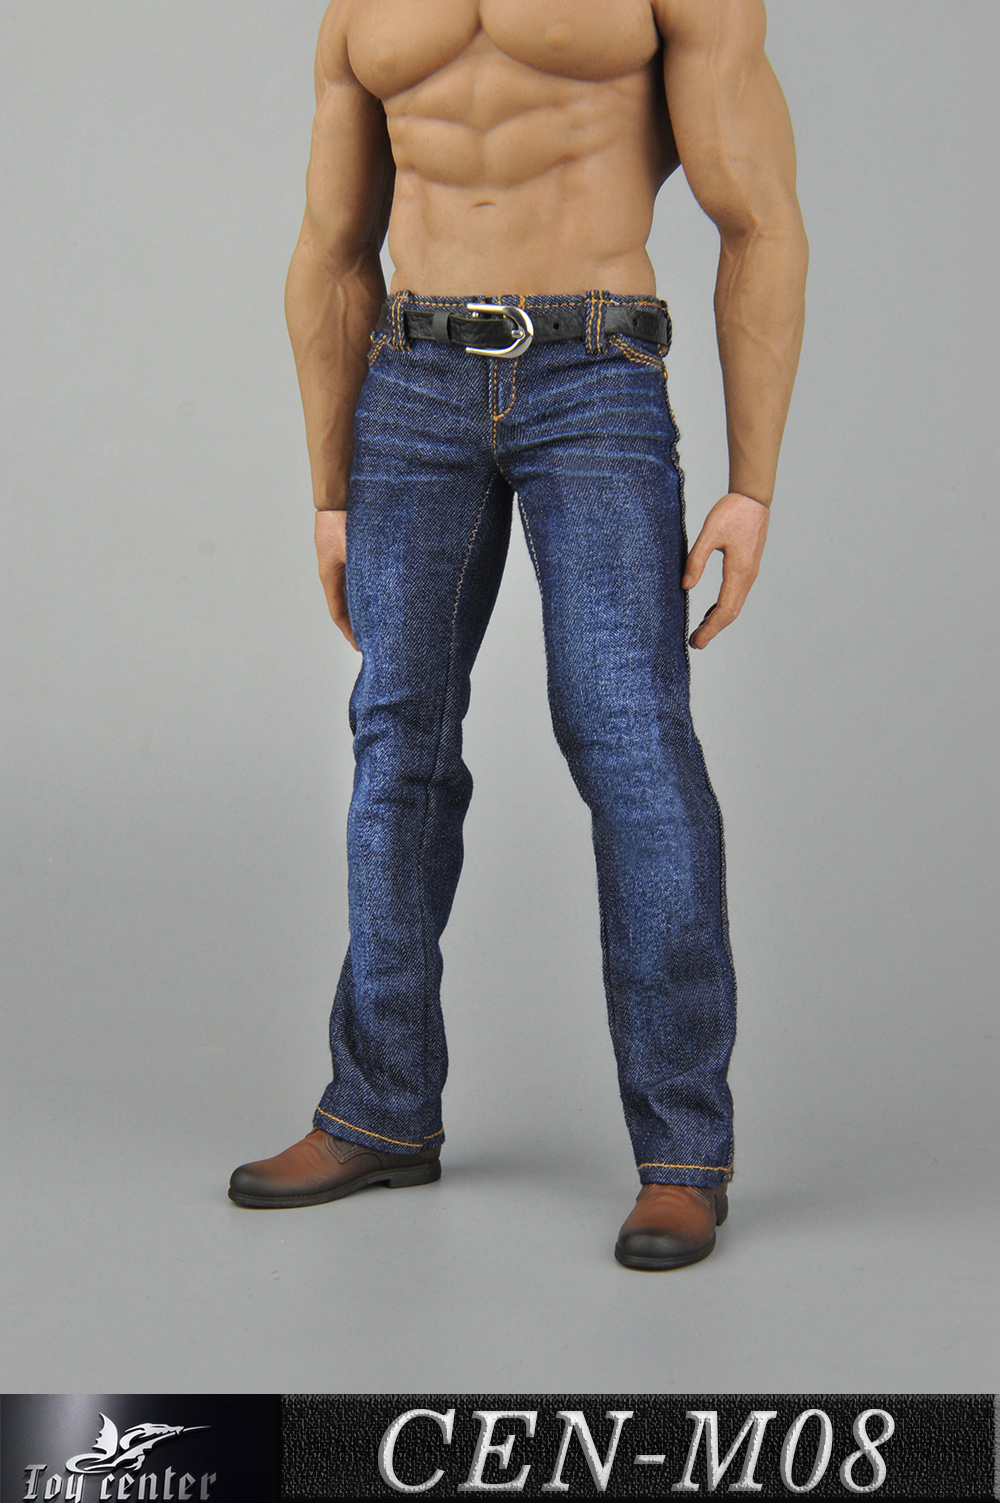 clothes - NEW PRODUCT: Toy Center: 1/6 Sports Vest Jeans Set - Three Colors A/B/C 13424010